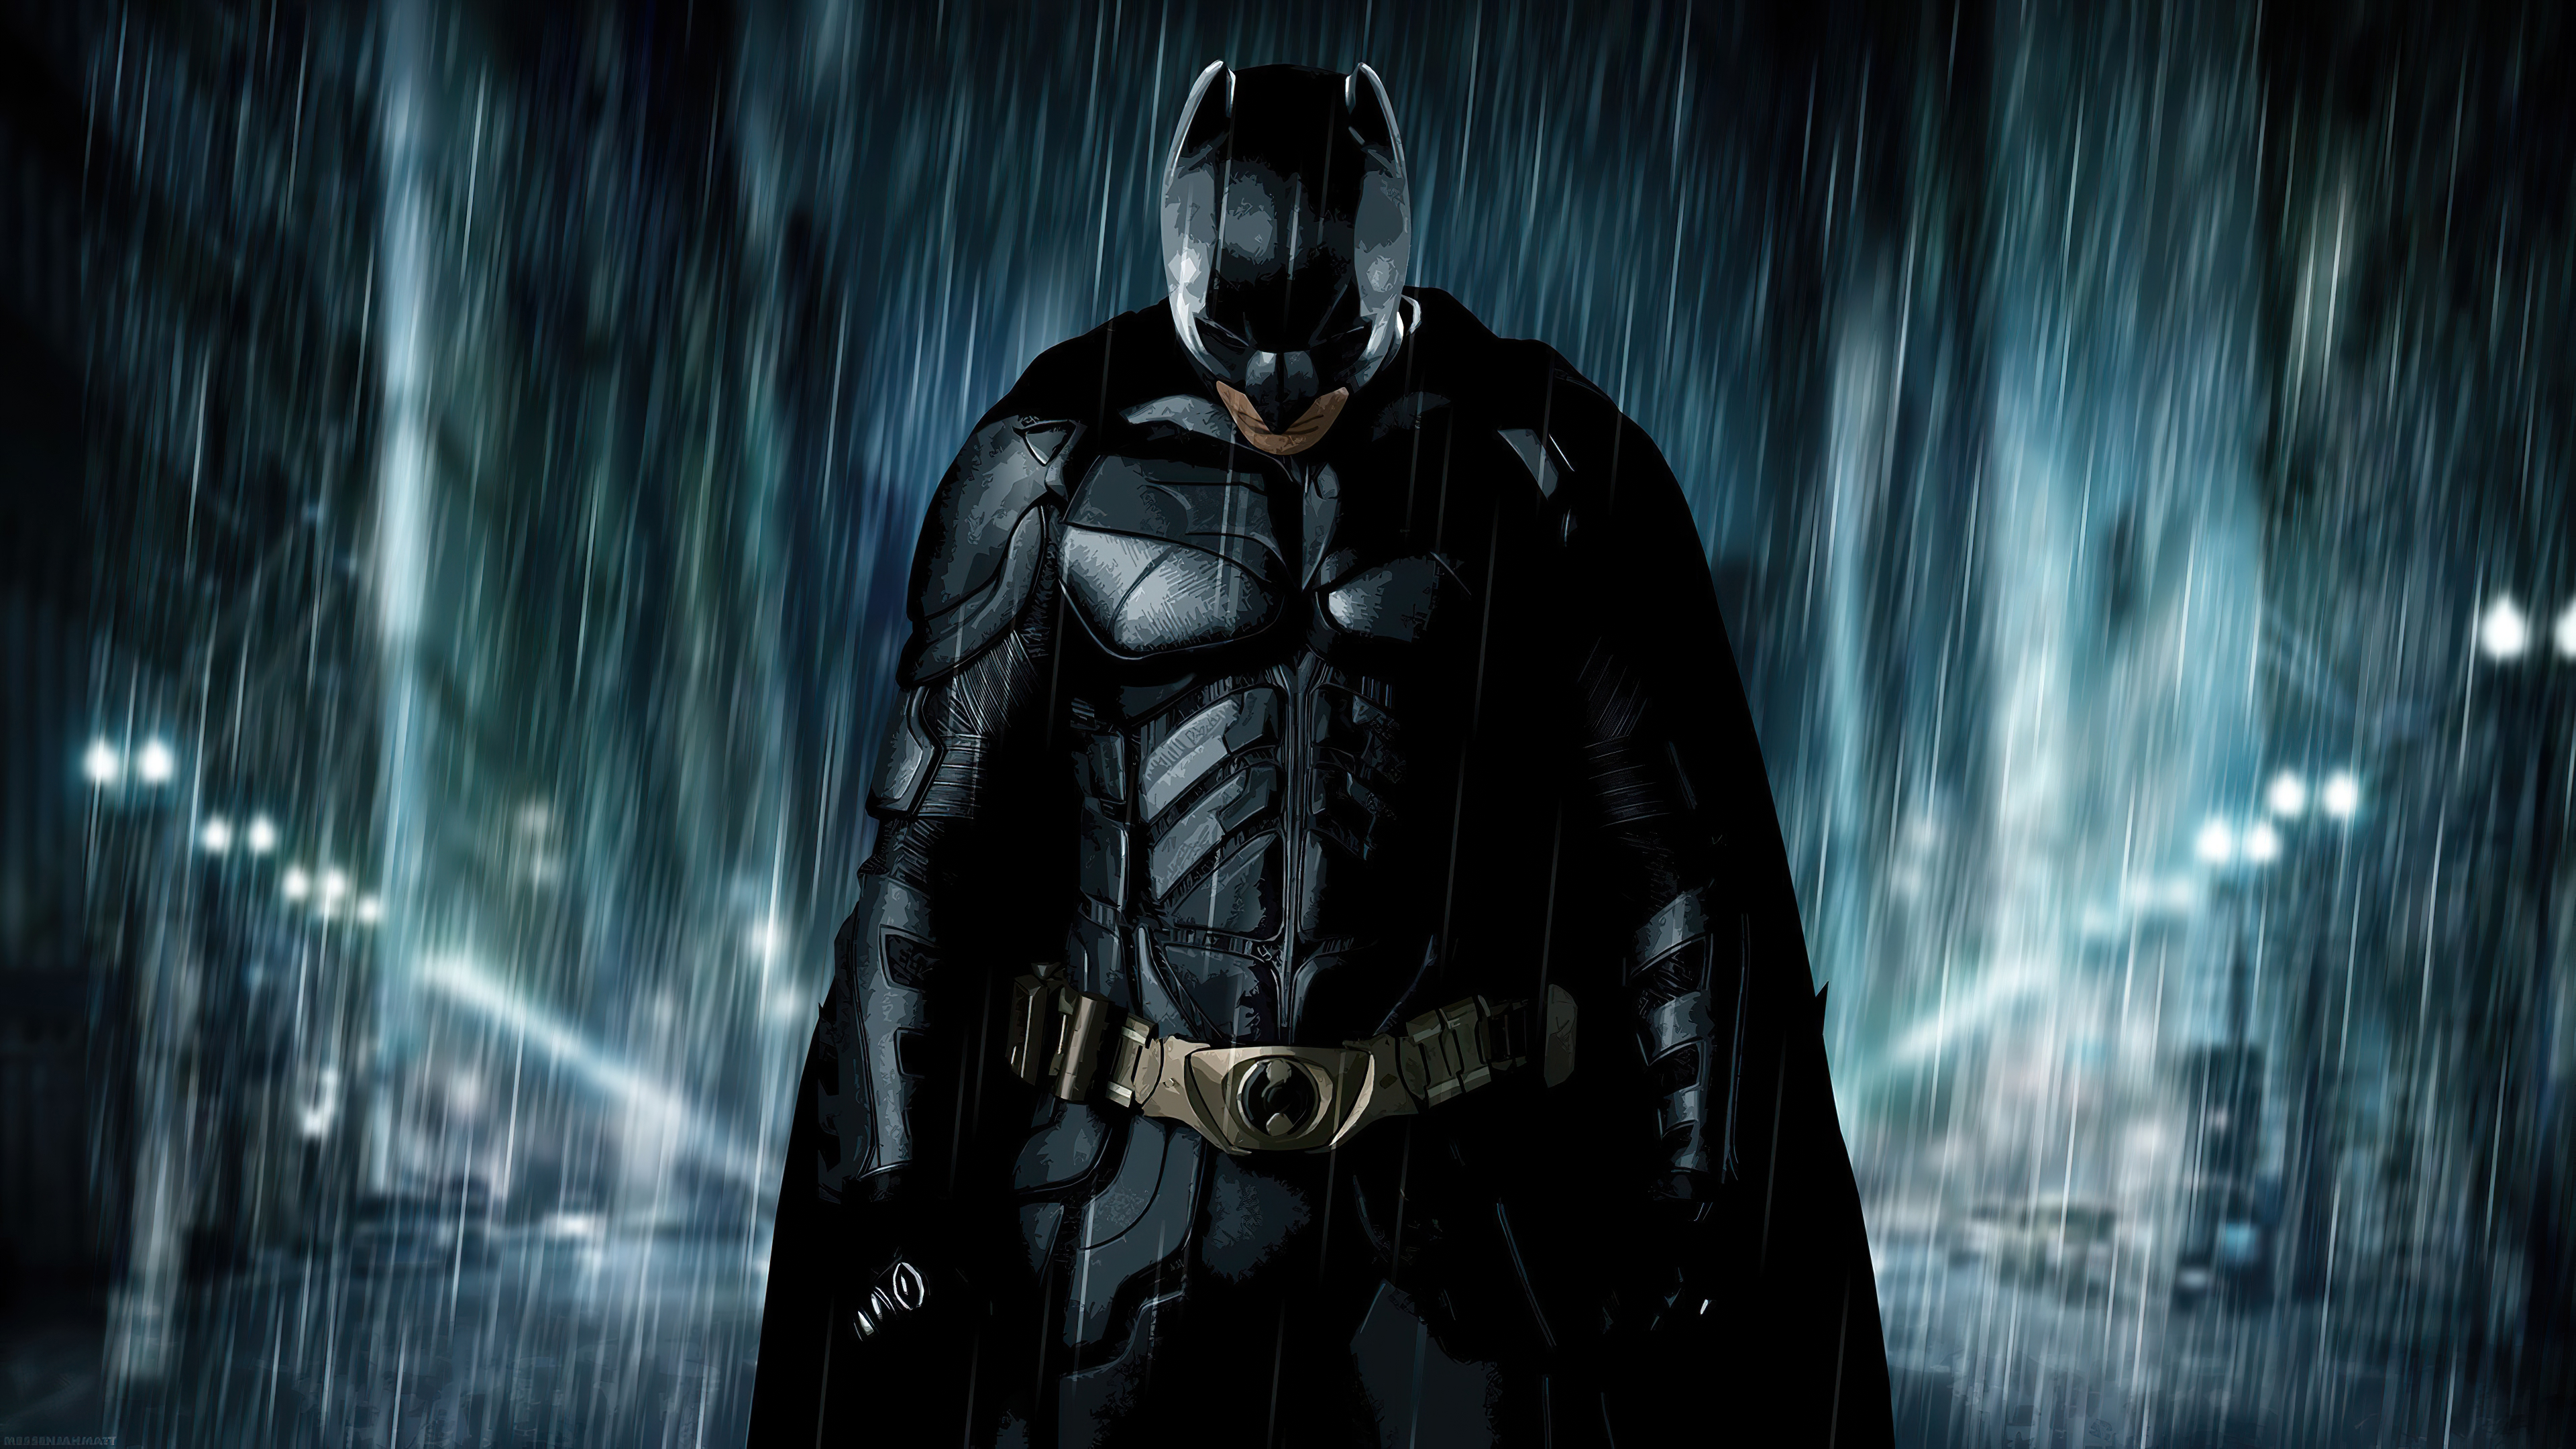 batman is rained upon